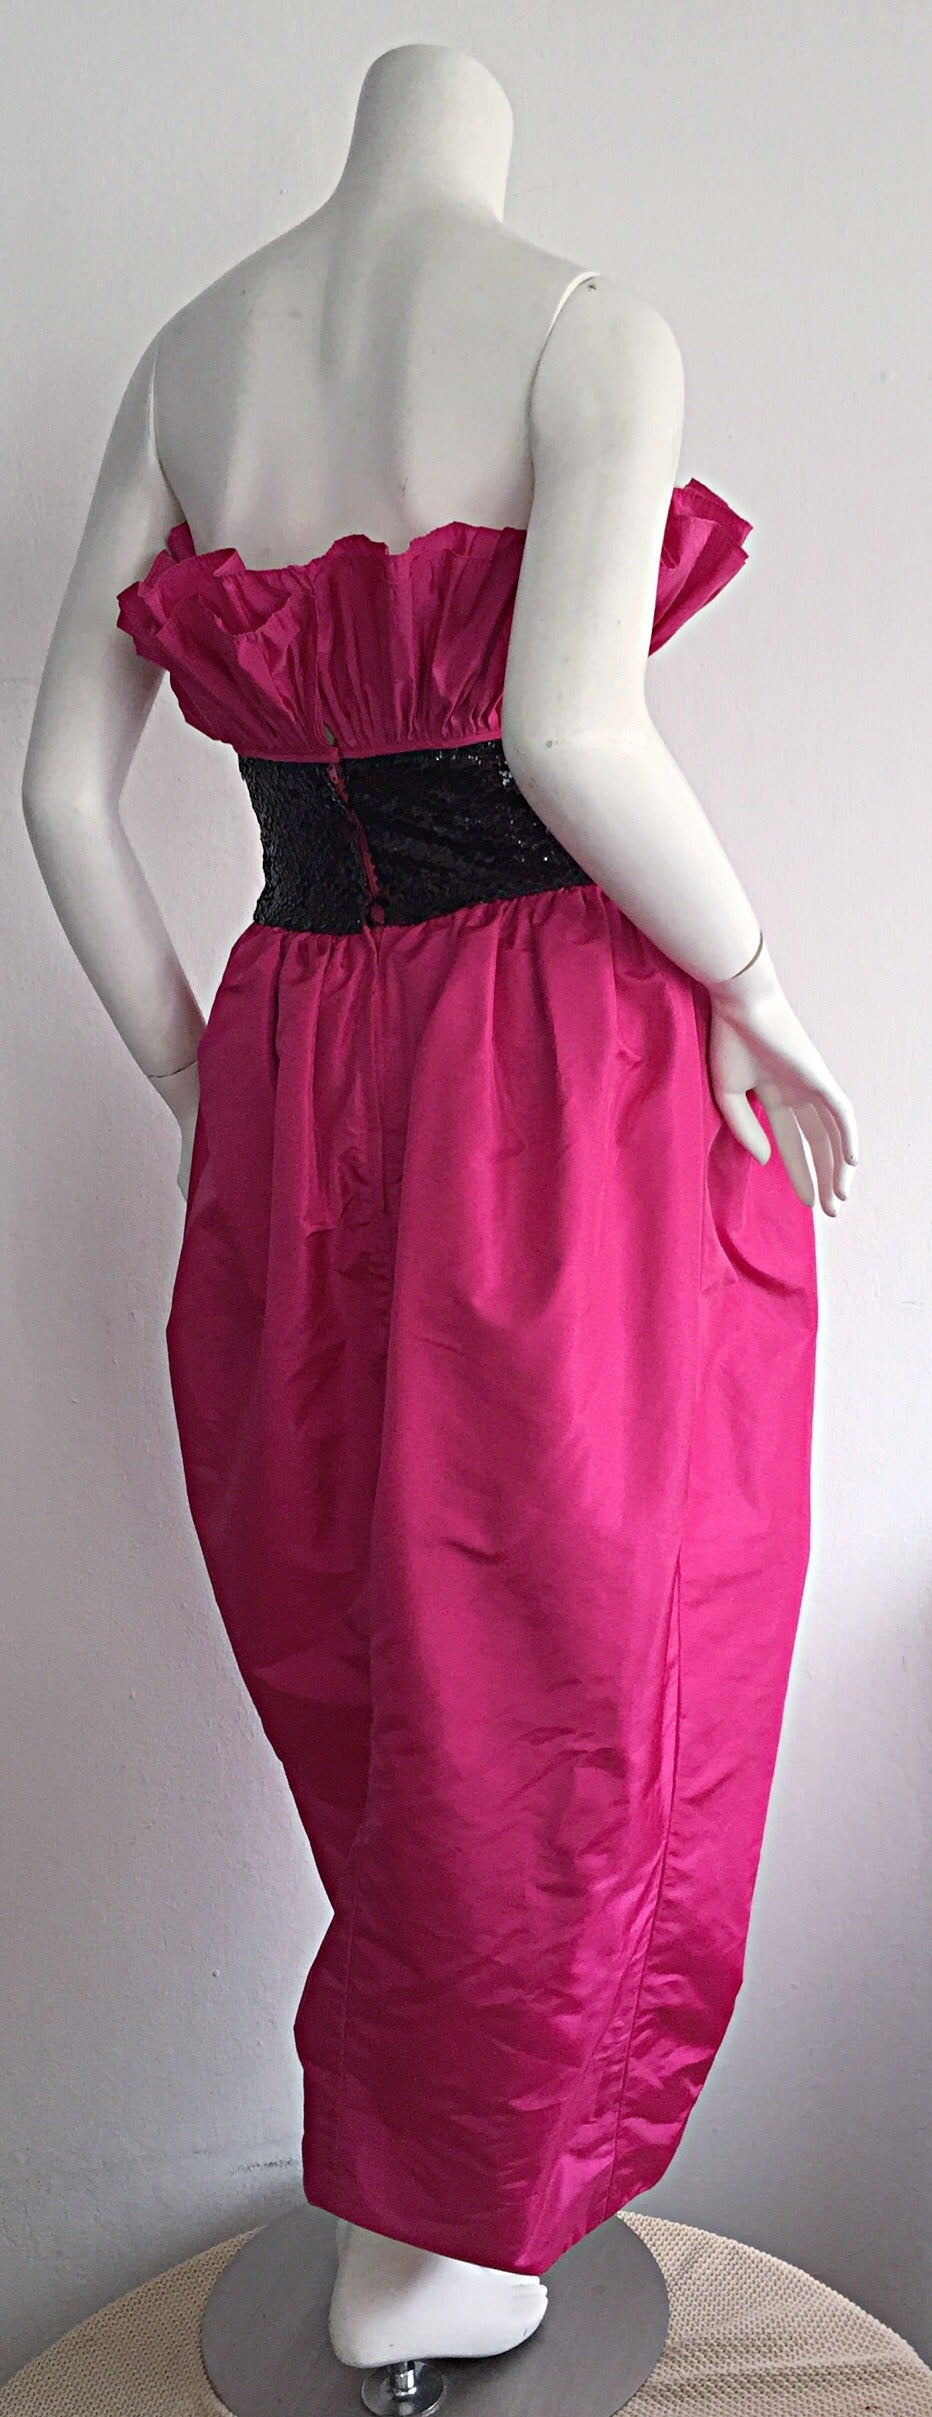 Incredible Vintage Victor Costa for Neiman Marcus Hot Pink Origami Tulip Dress 4